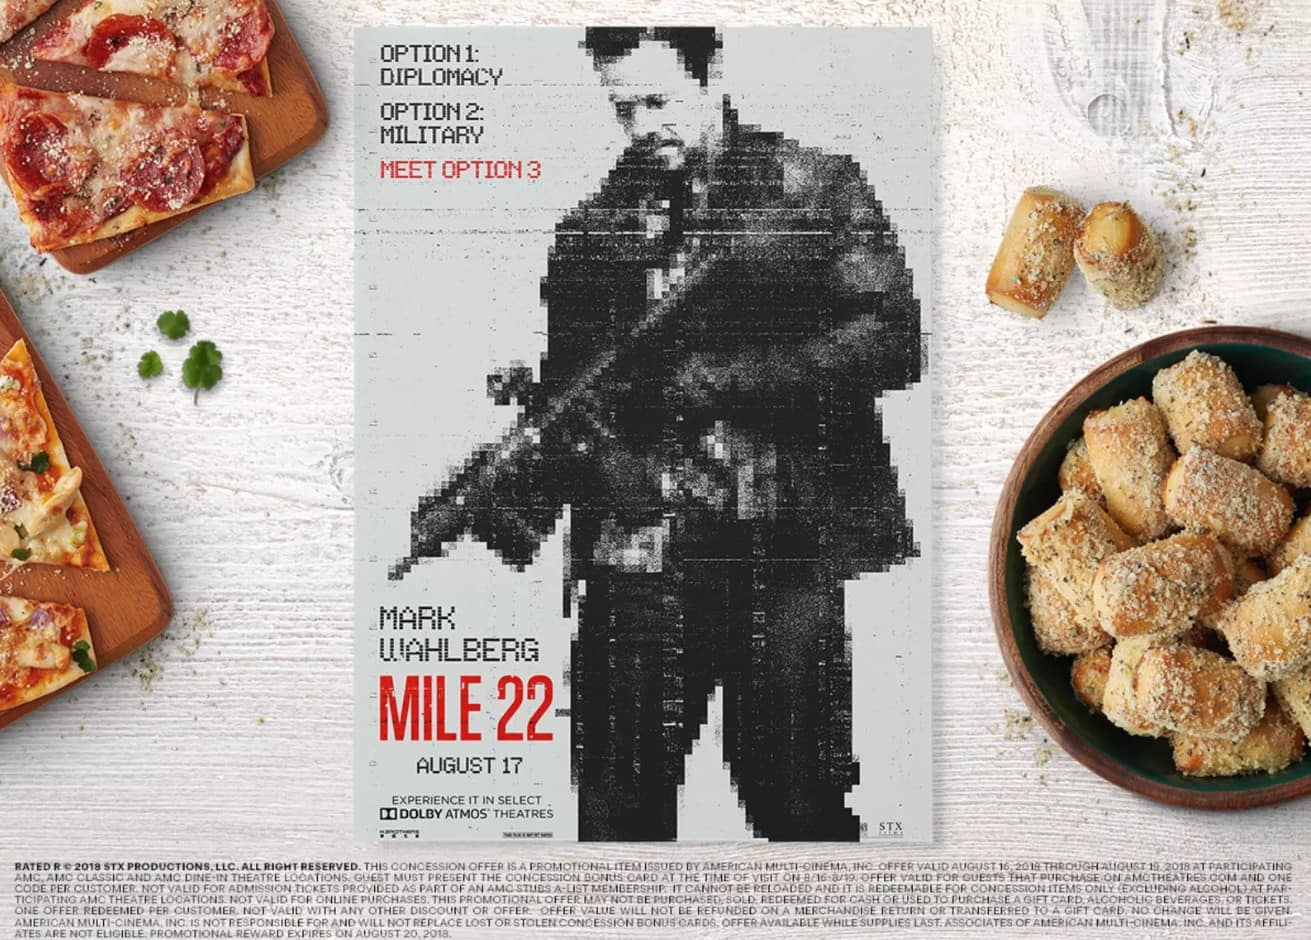 Free $5 AMC Theatres Concession Bonus Card w/ Mile 22 Movie Ticket Purchase @ AMCTheatres.com (8/16-8/19)